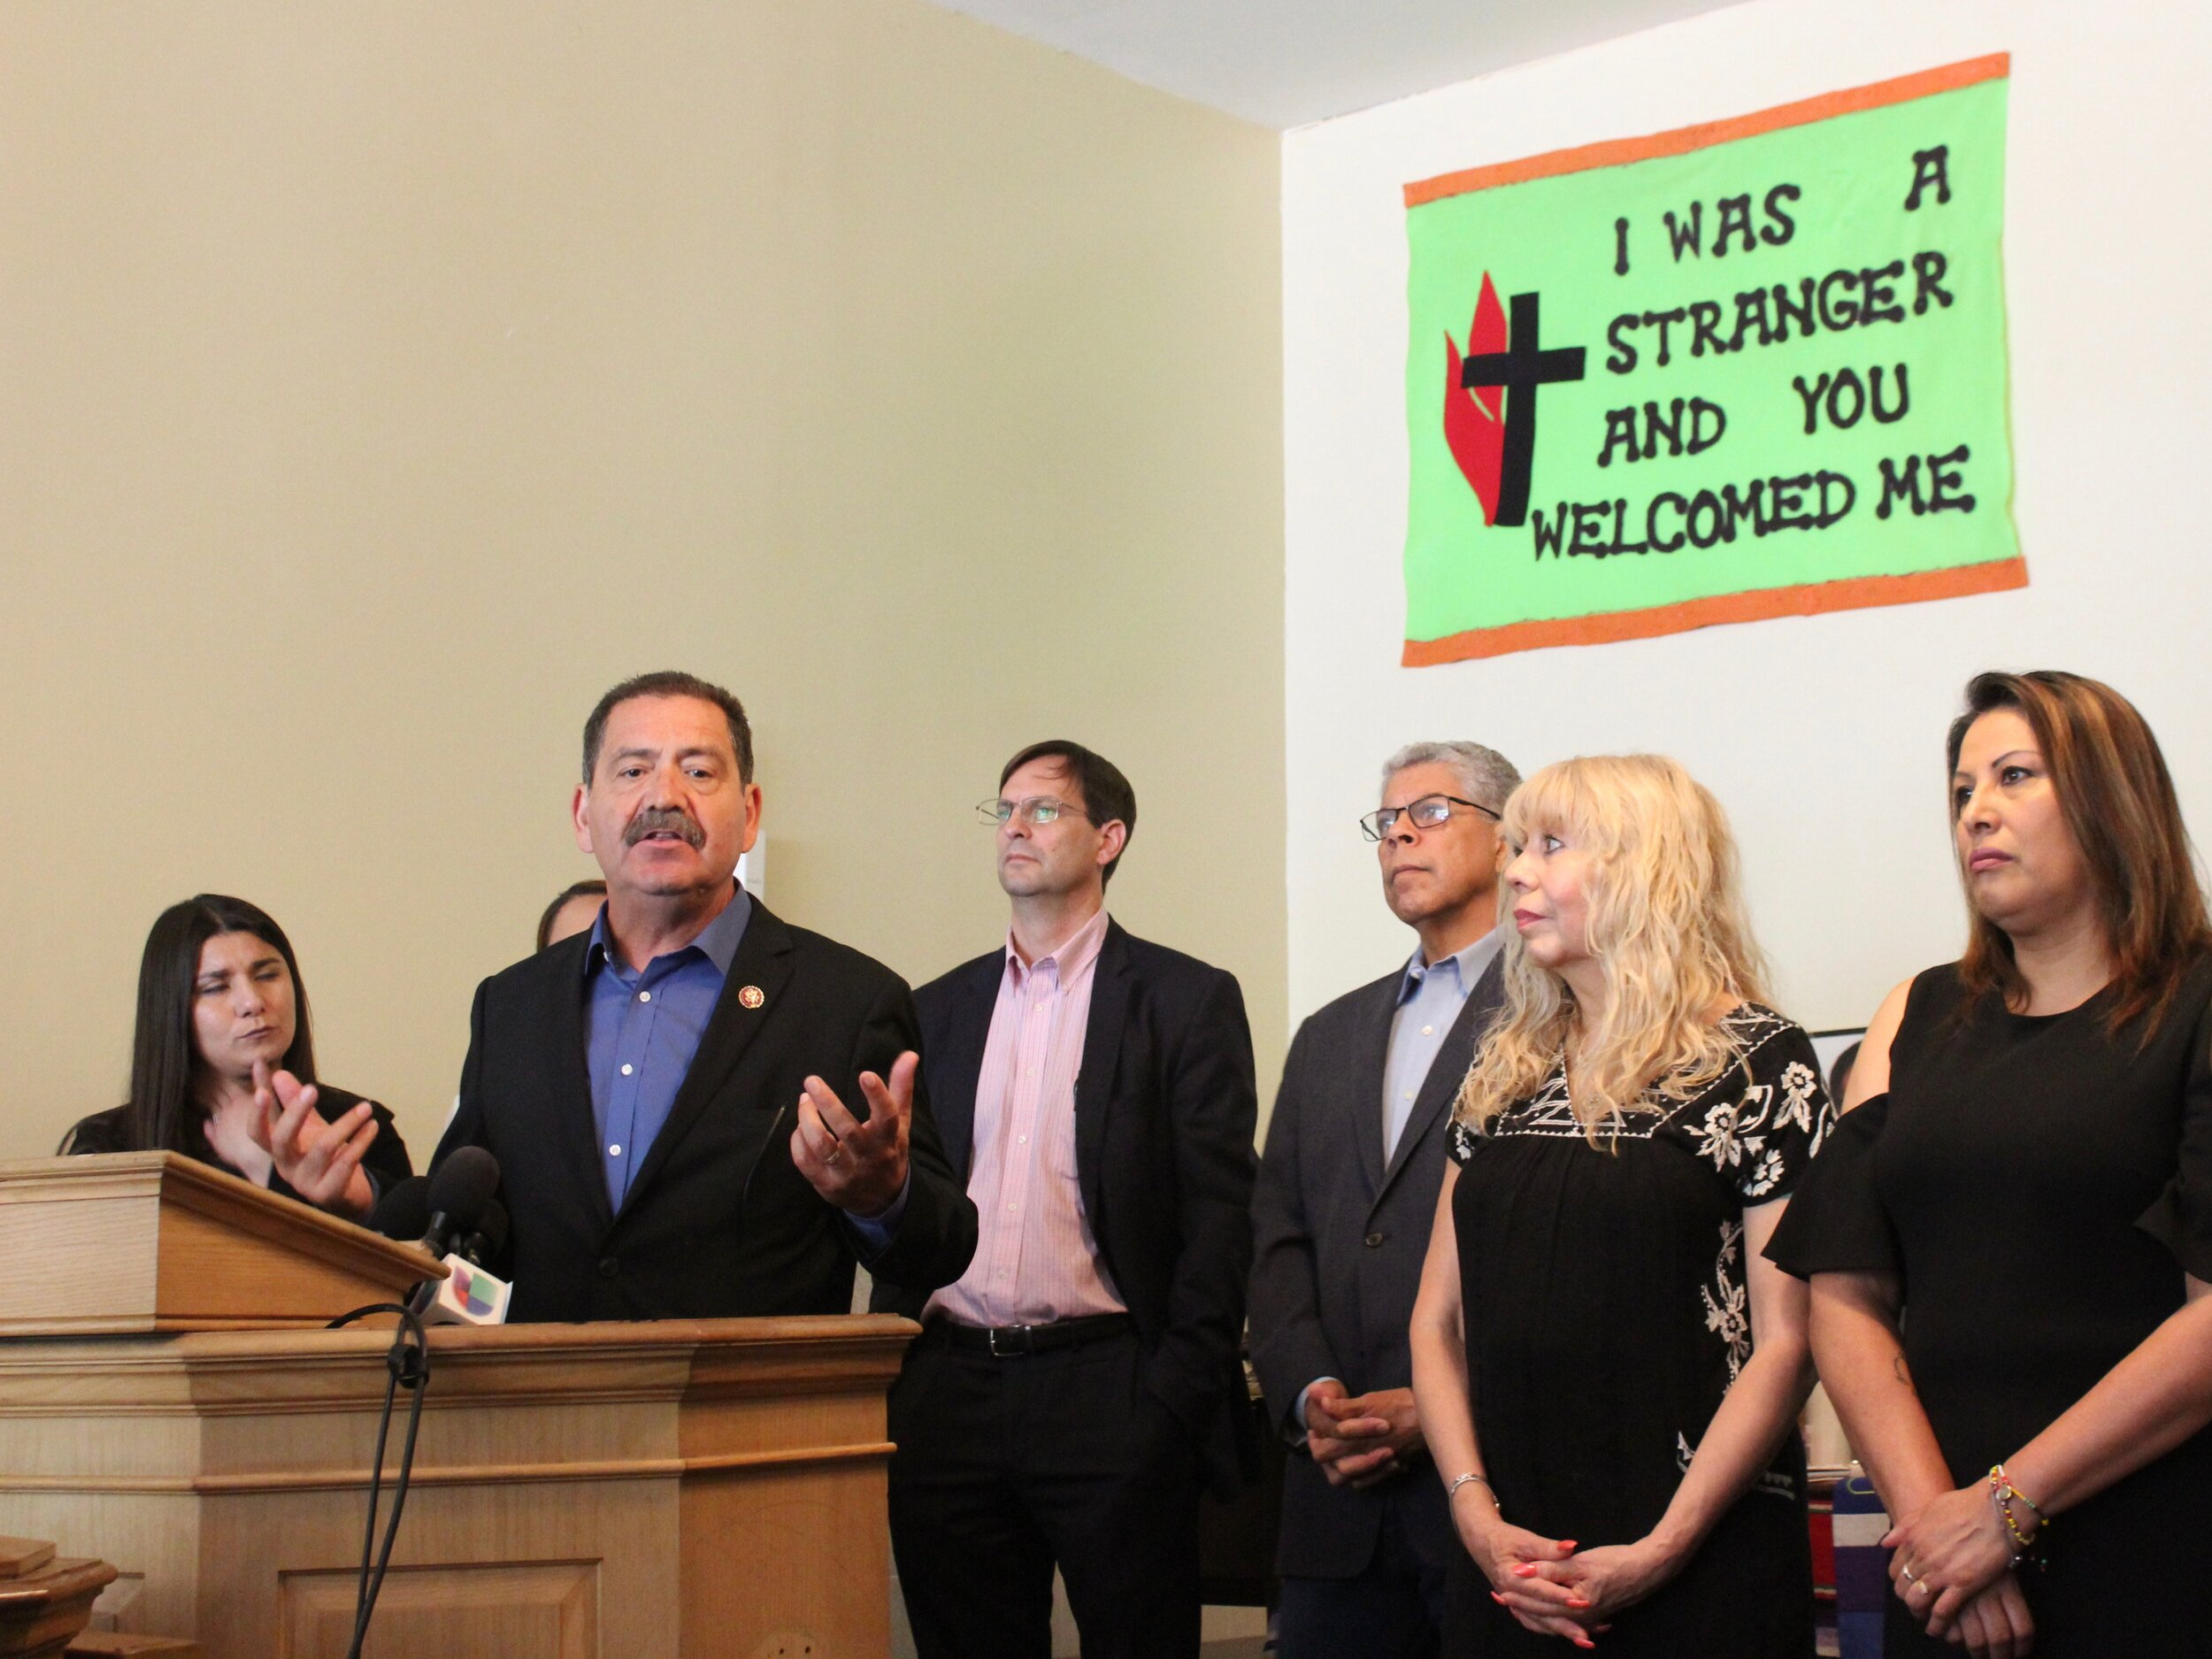 """U.S. Rep. Jesus """"Chuy"""" Garcia speaks in defense of immigrants at a Chicago news conference this summer. (One Illinois/Ted Cox)"""